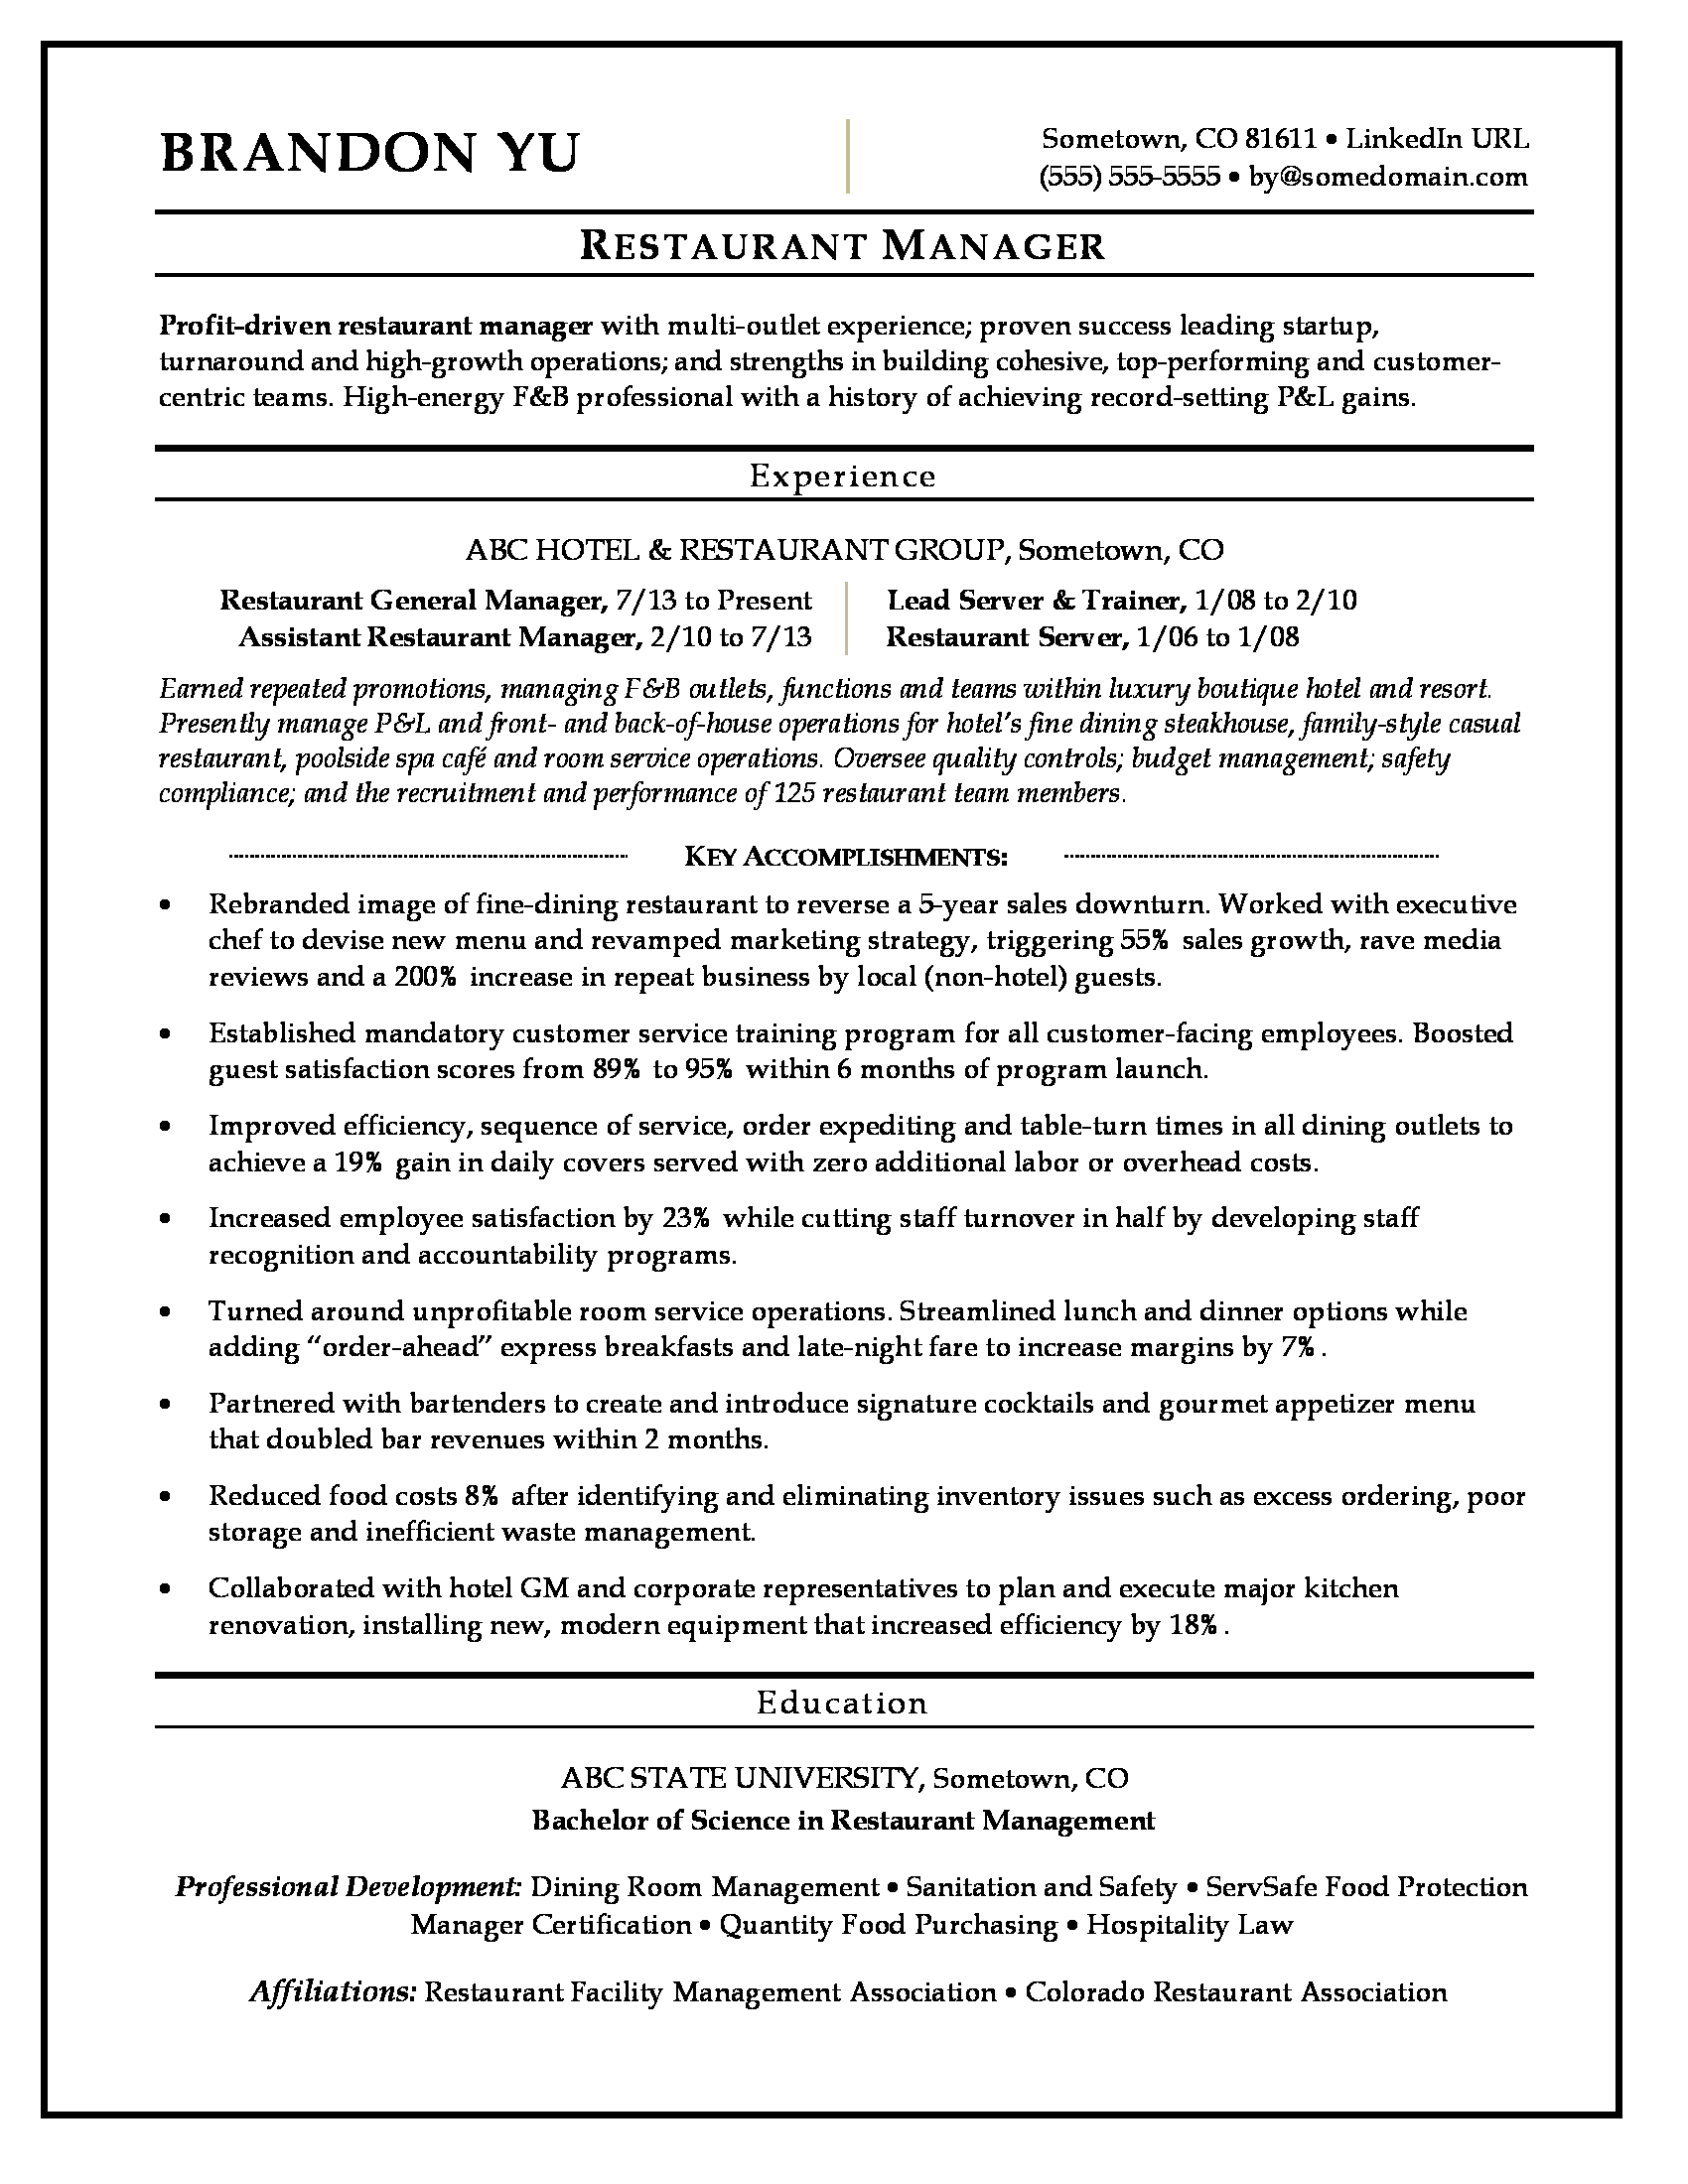 Lunch Supervisor Resume Sample Restaurant Manager Resume Sample Monster